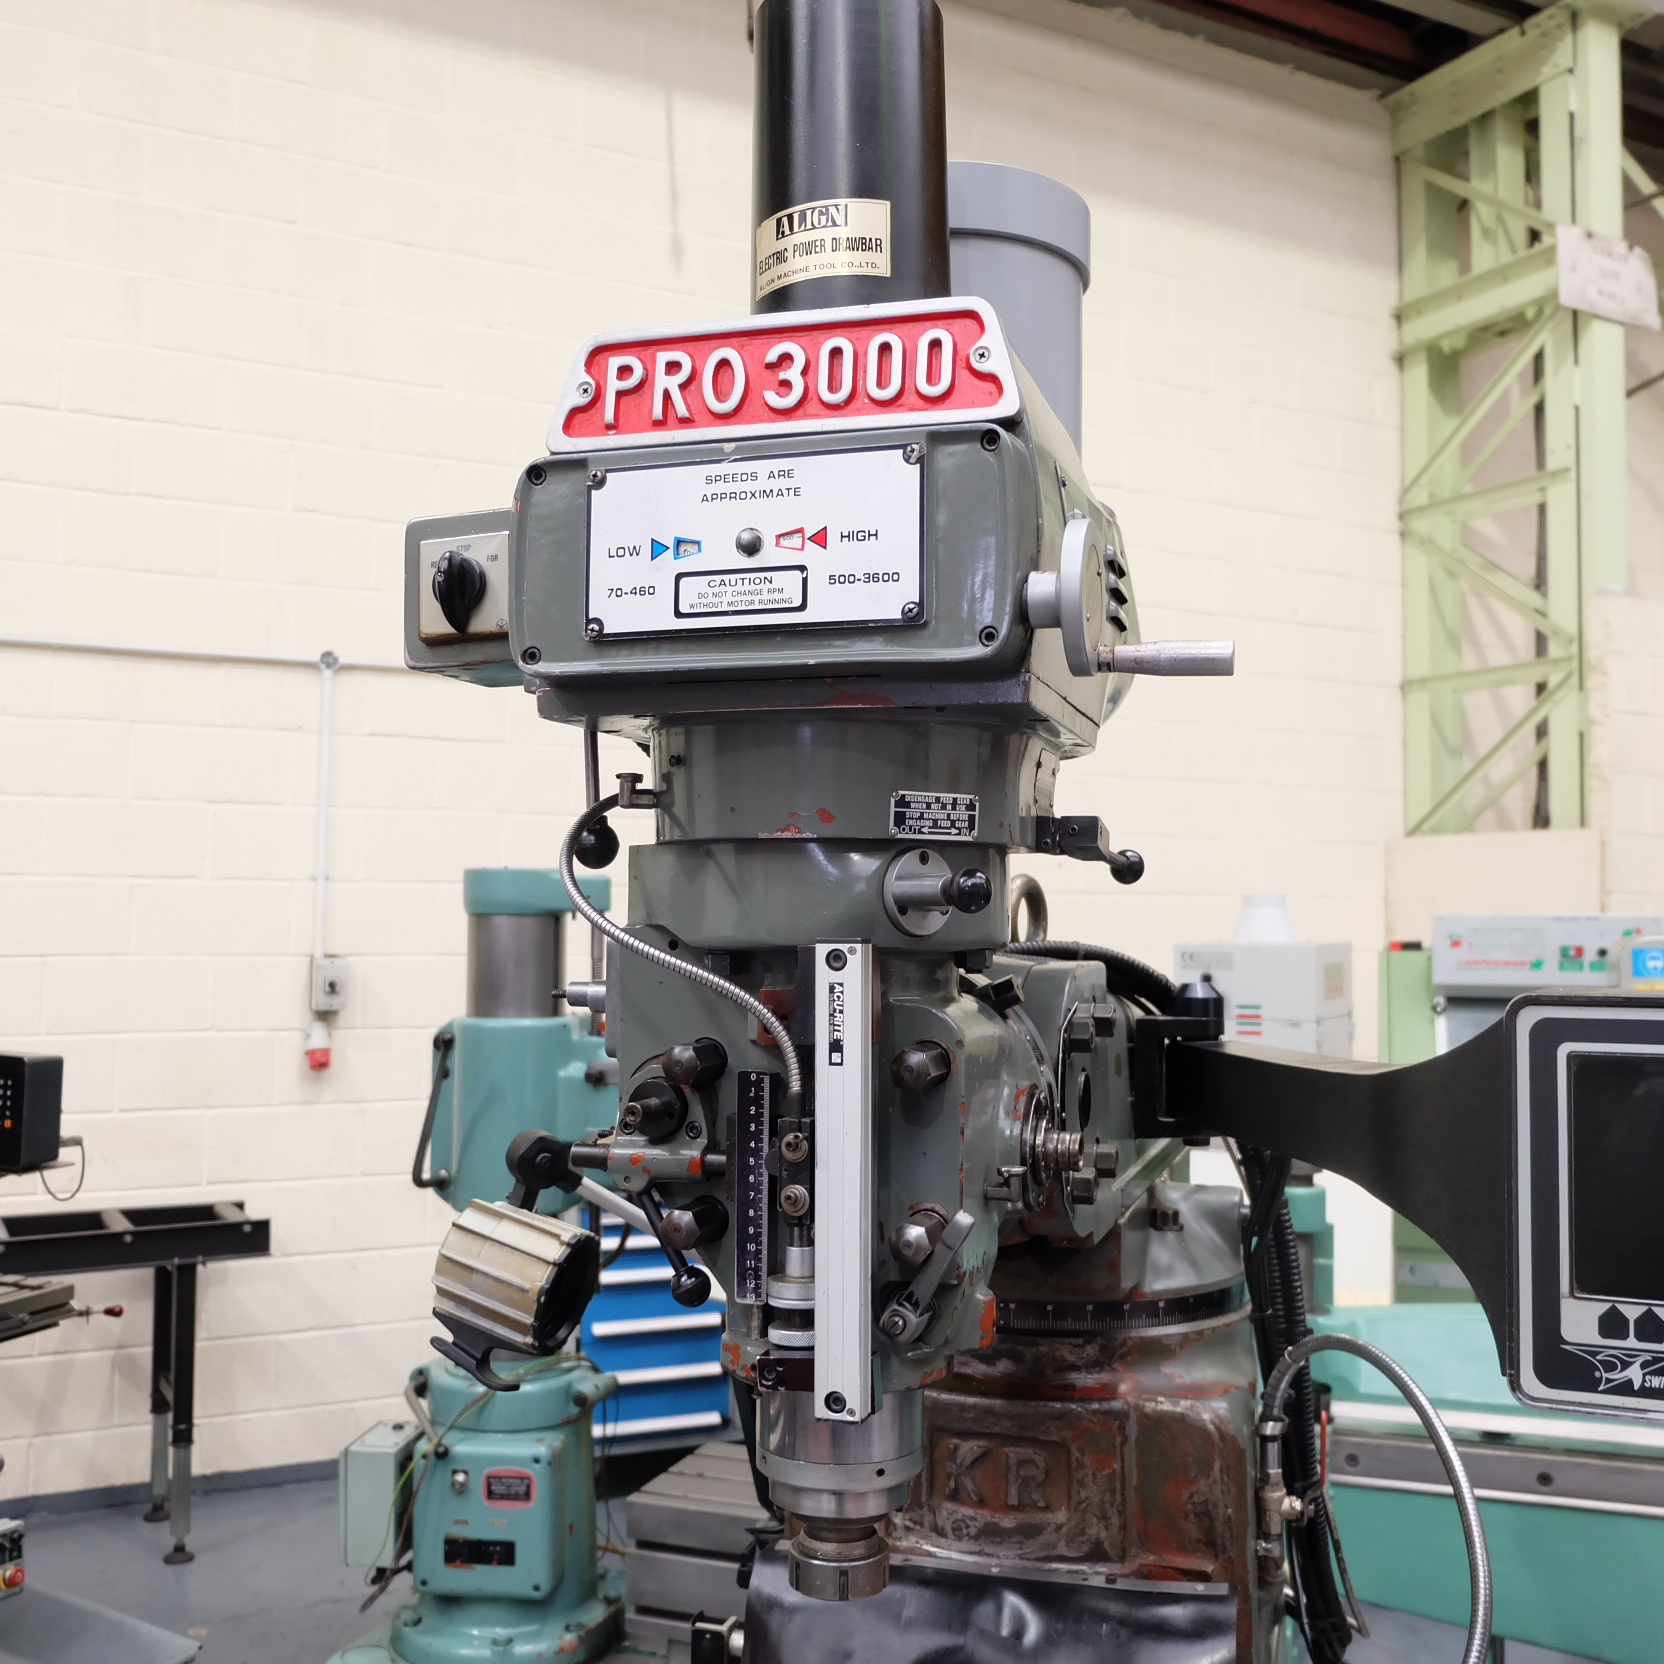 XYZ Pro3000: Turret Mill. With Prototrak MX2 Two Axis Programmable Control. - Image 3 of 10